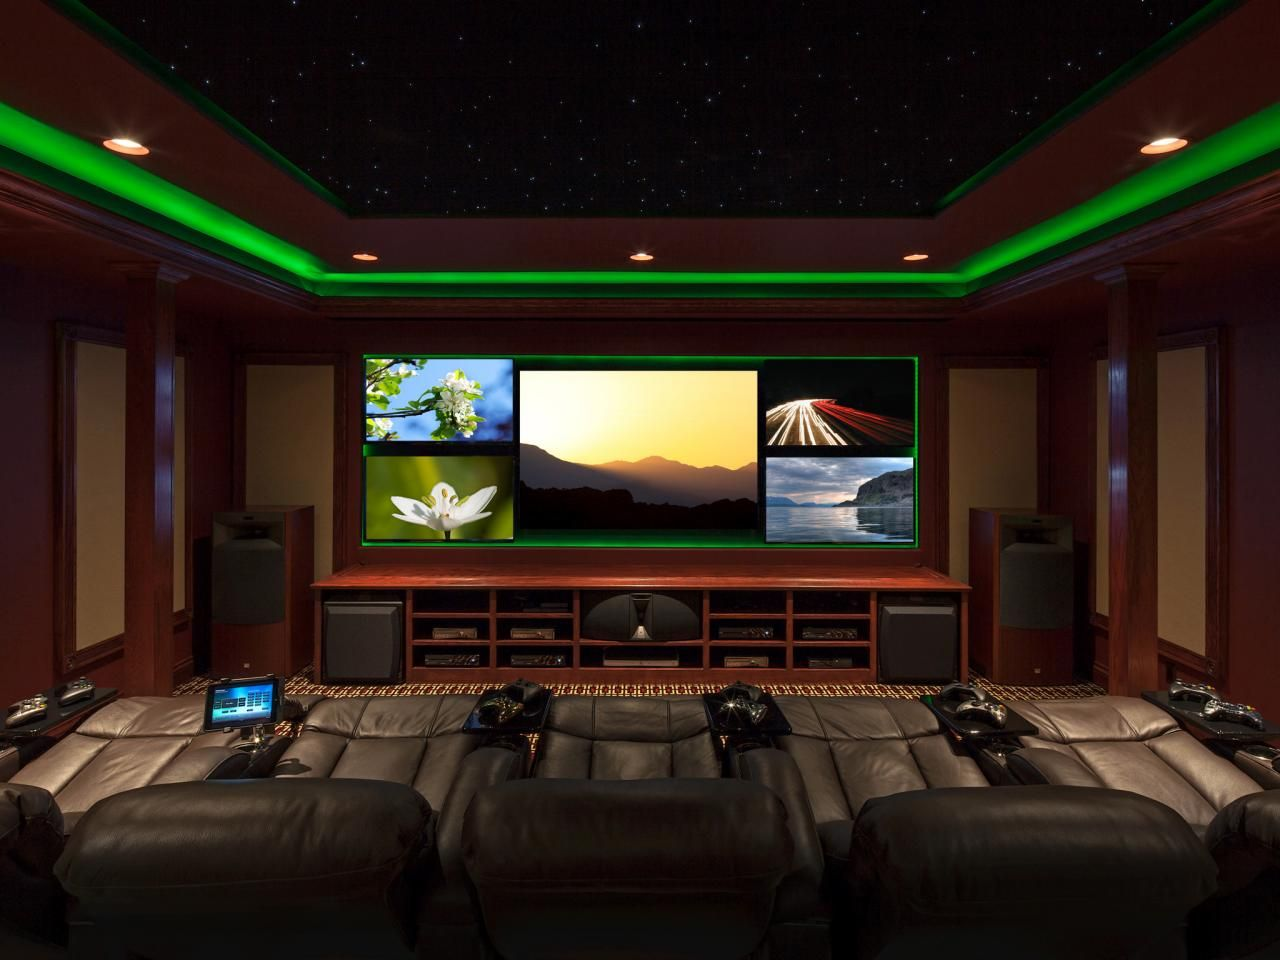 Sensational Media Room Design With Couches Coffee Table A